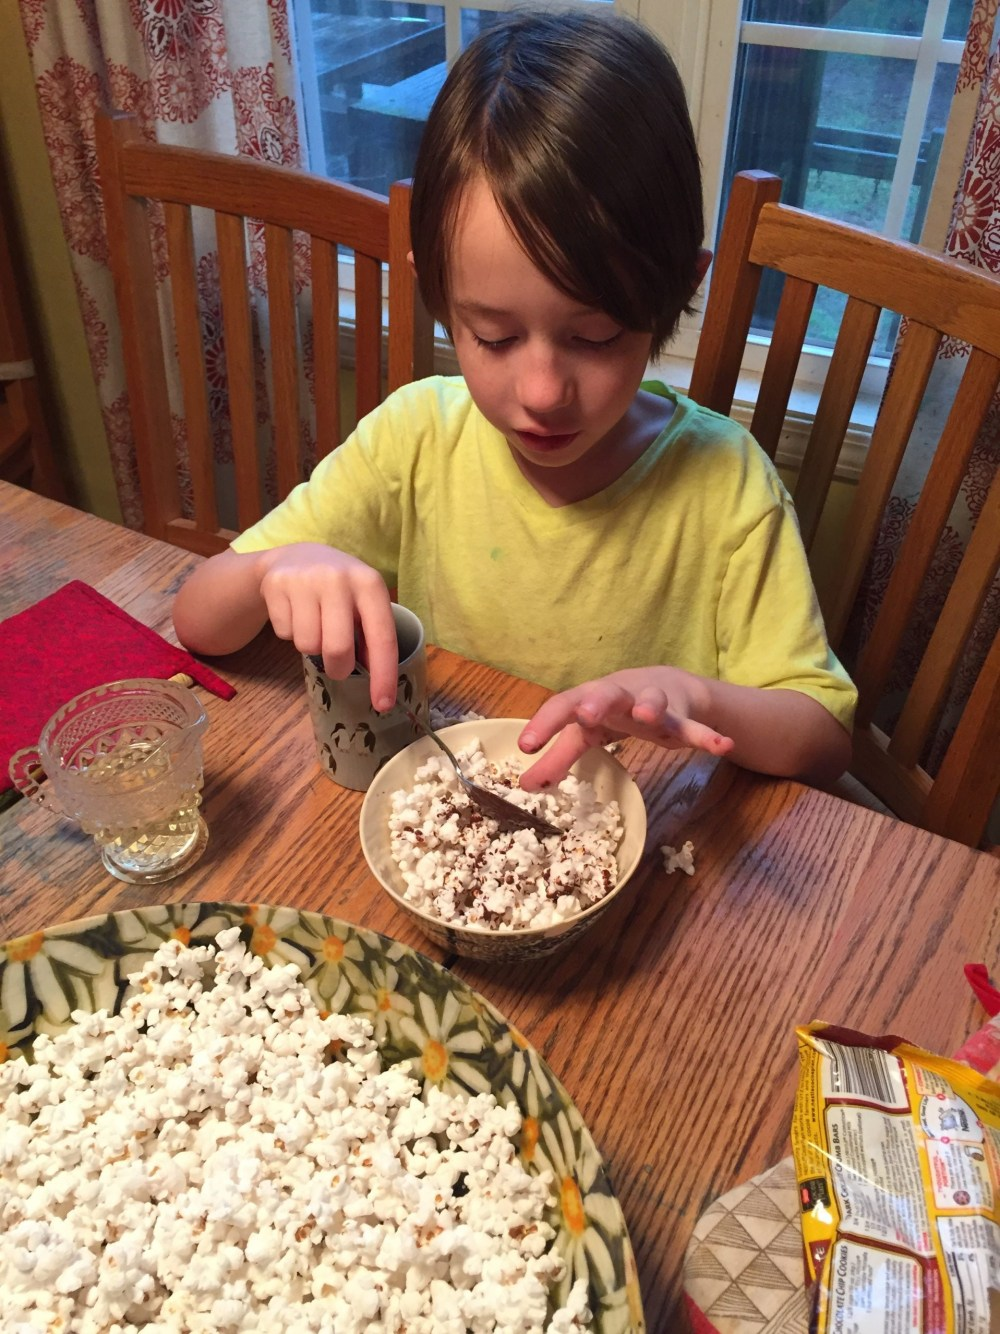 Create-a-Flavor Popcorn Contest, Creative Family Idea Box, mackenzie chester, creative family culture